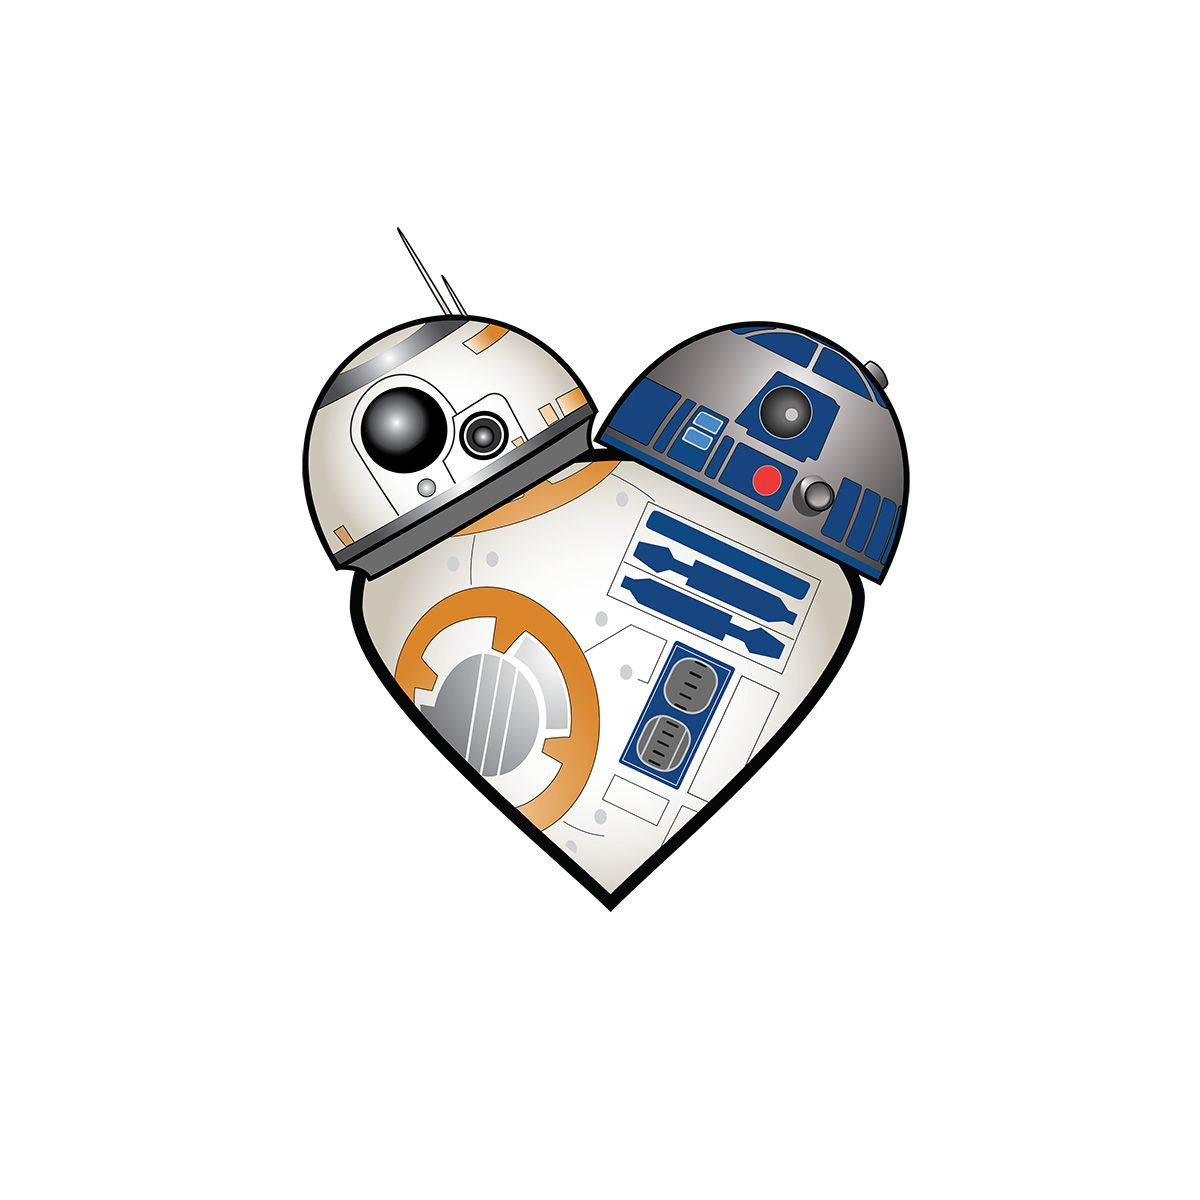 My r2 bb8 heart design is now a t shirt you can buy